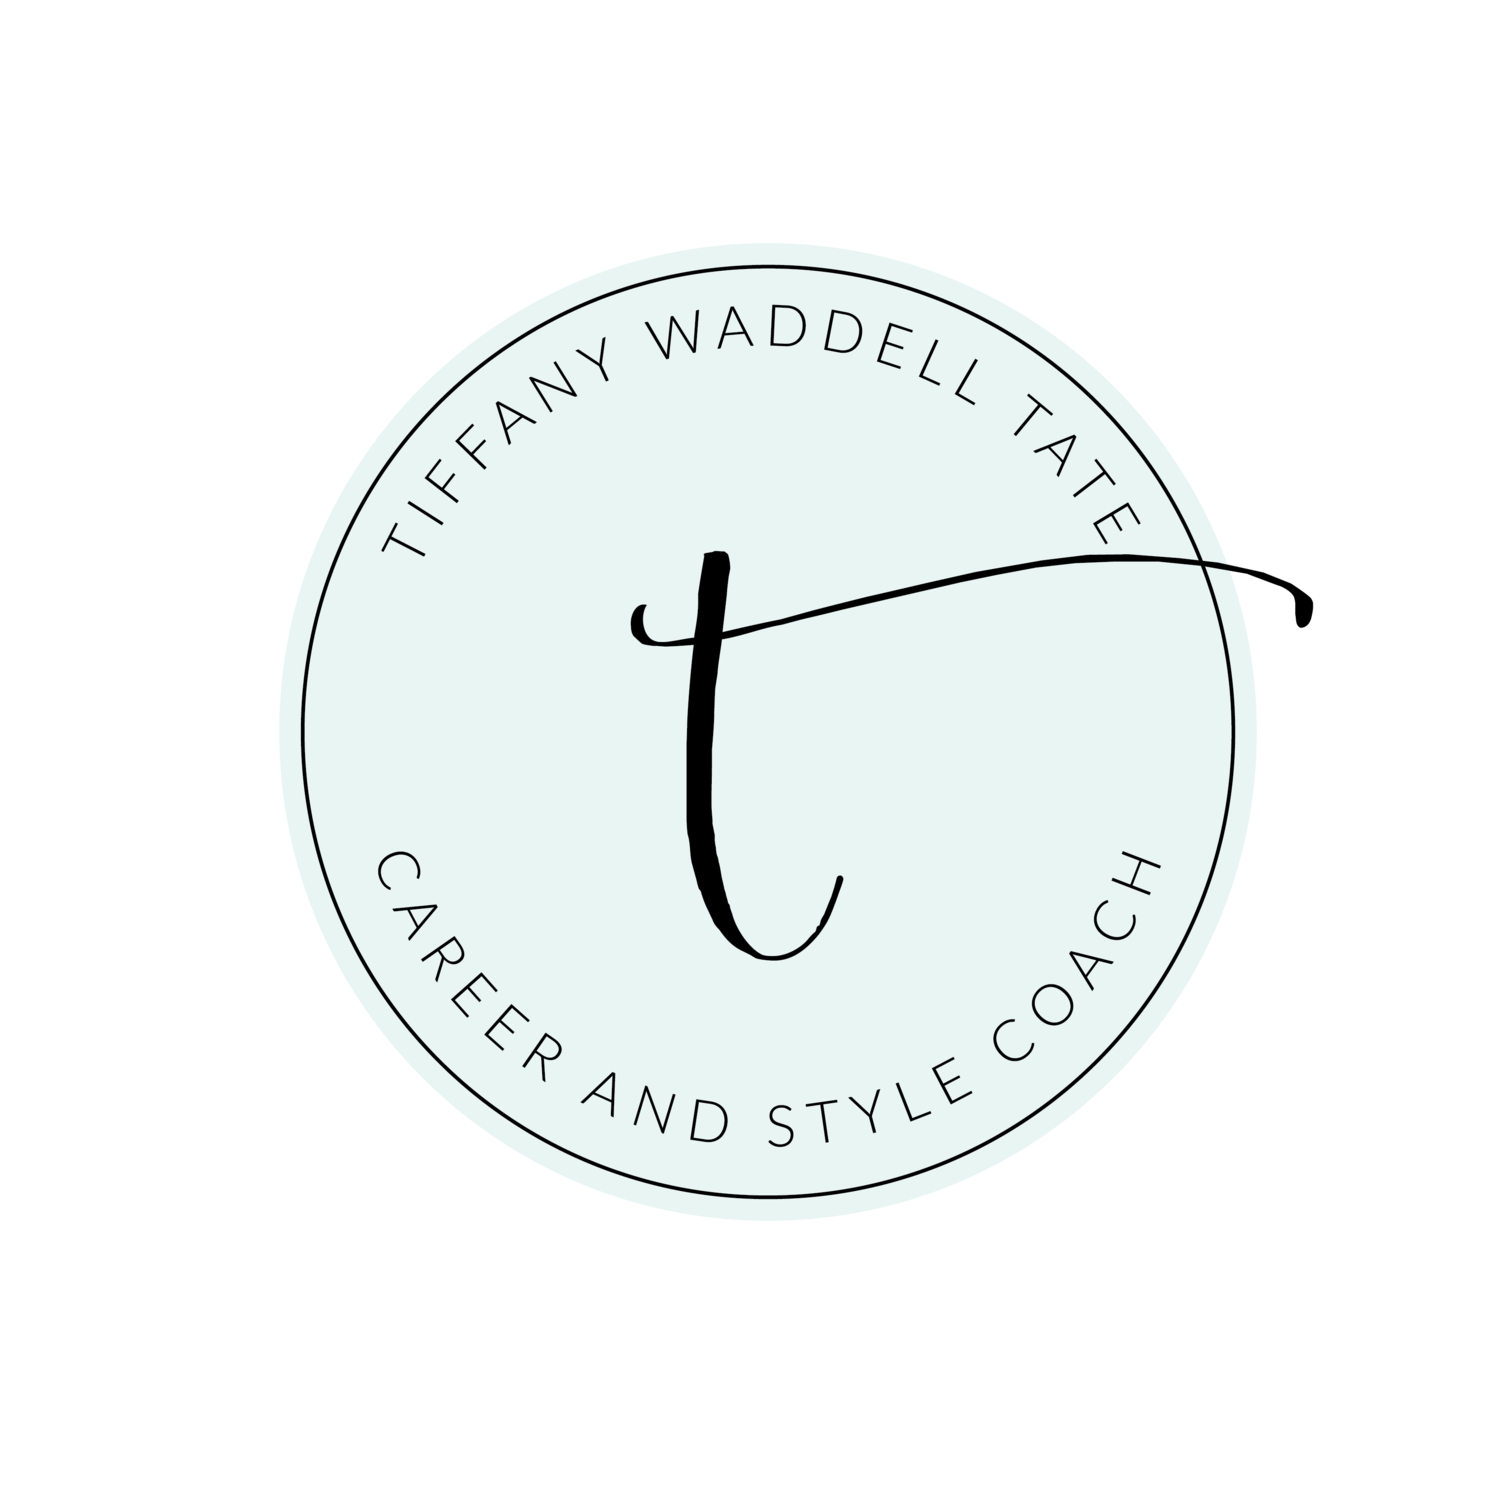 Tiffany Waddell Tate, Career & Style Coach